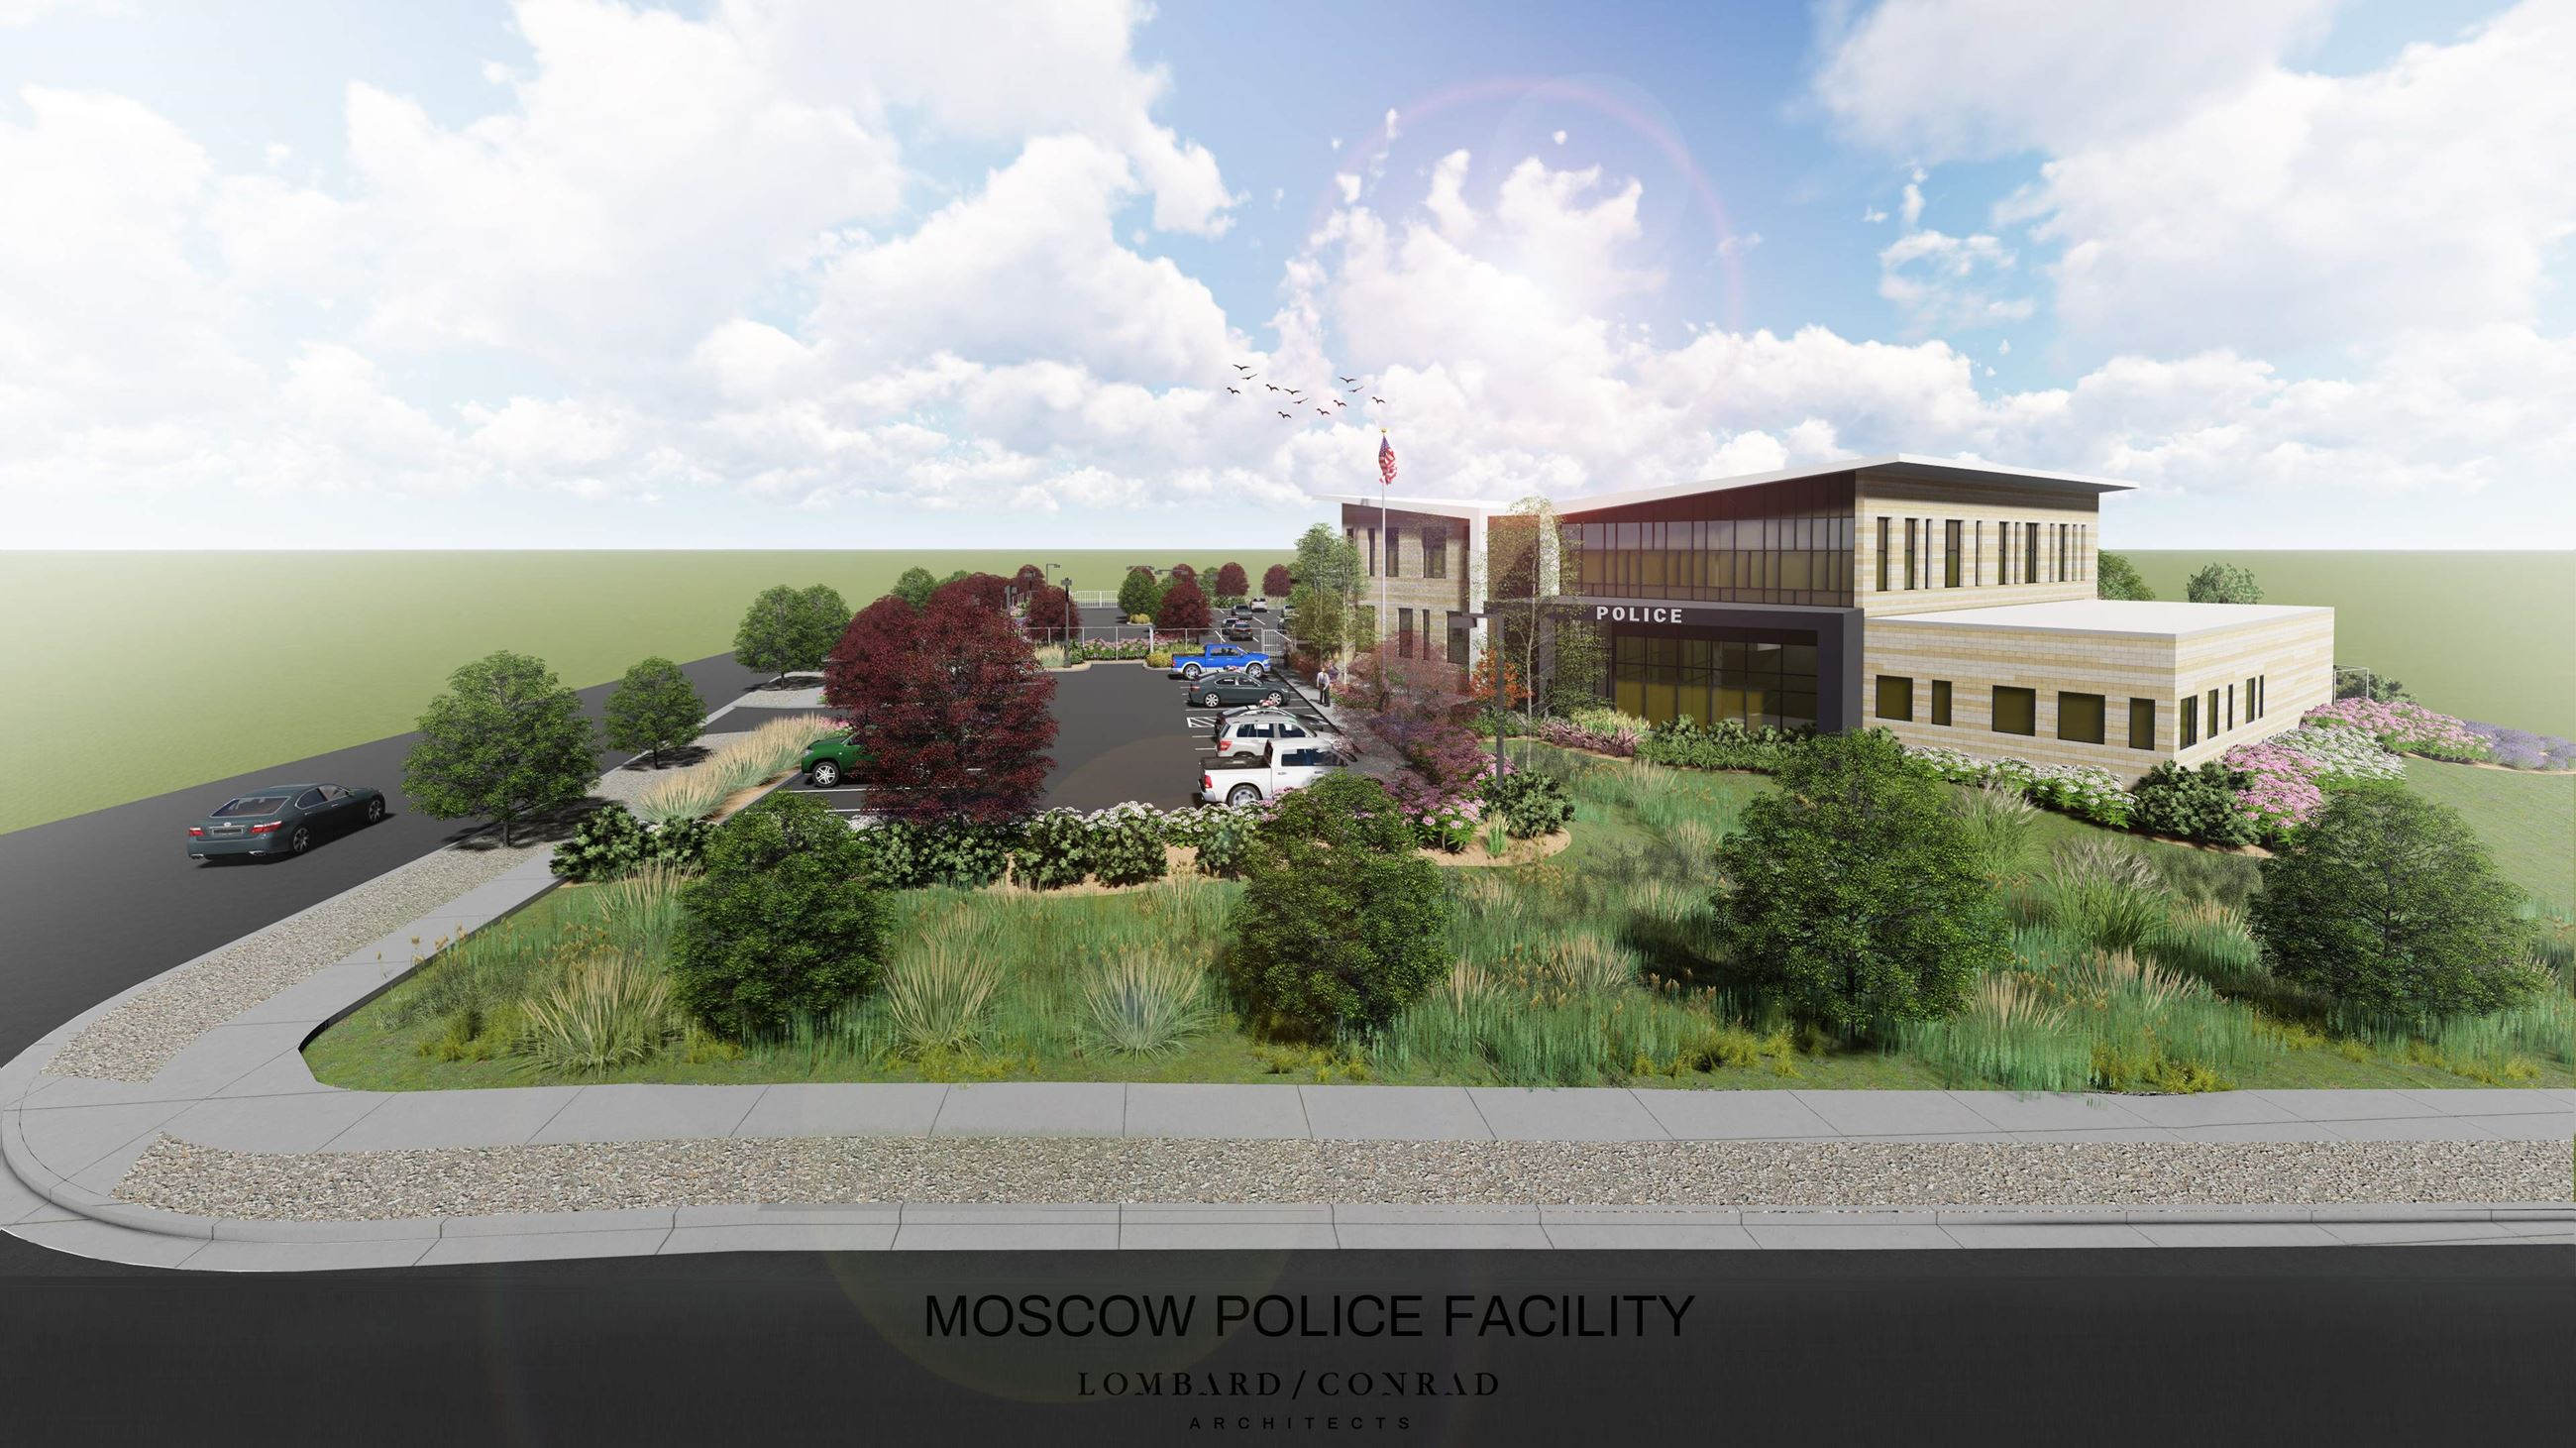 New Police Facility Concept Design Rendering